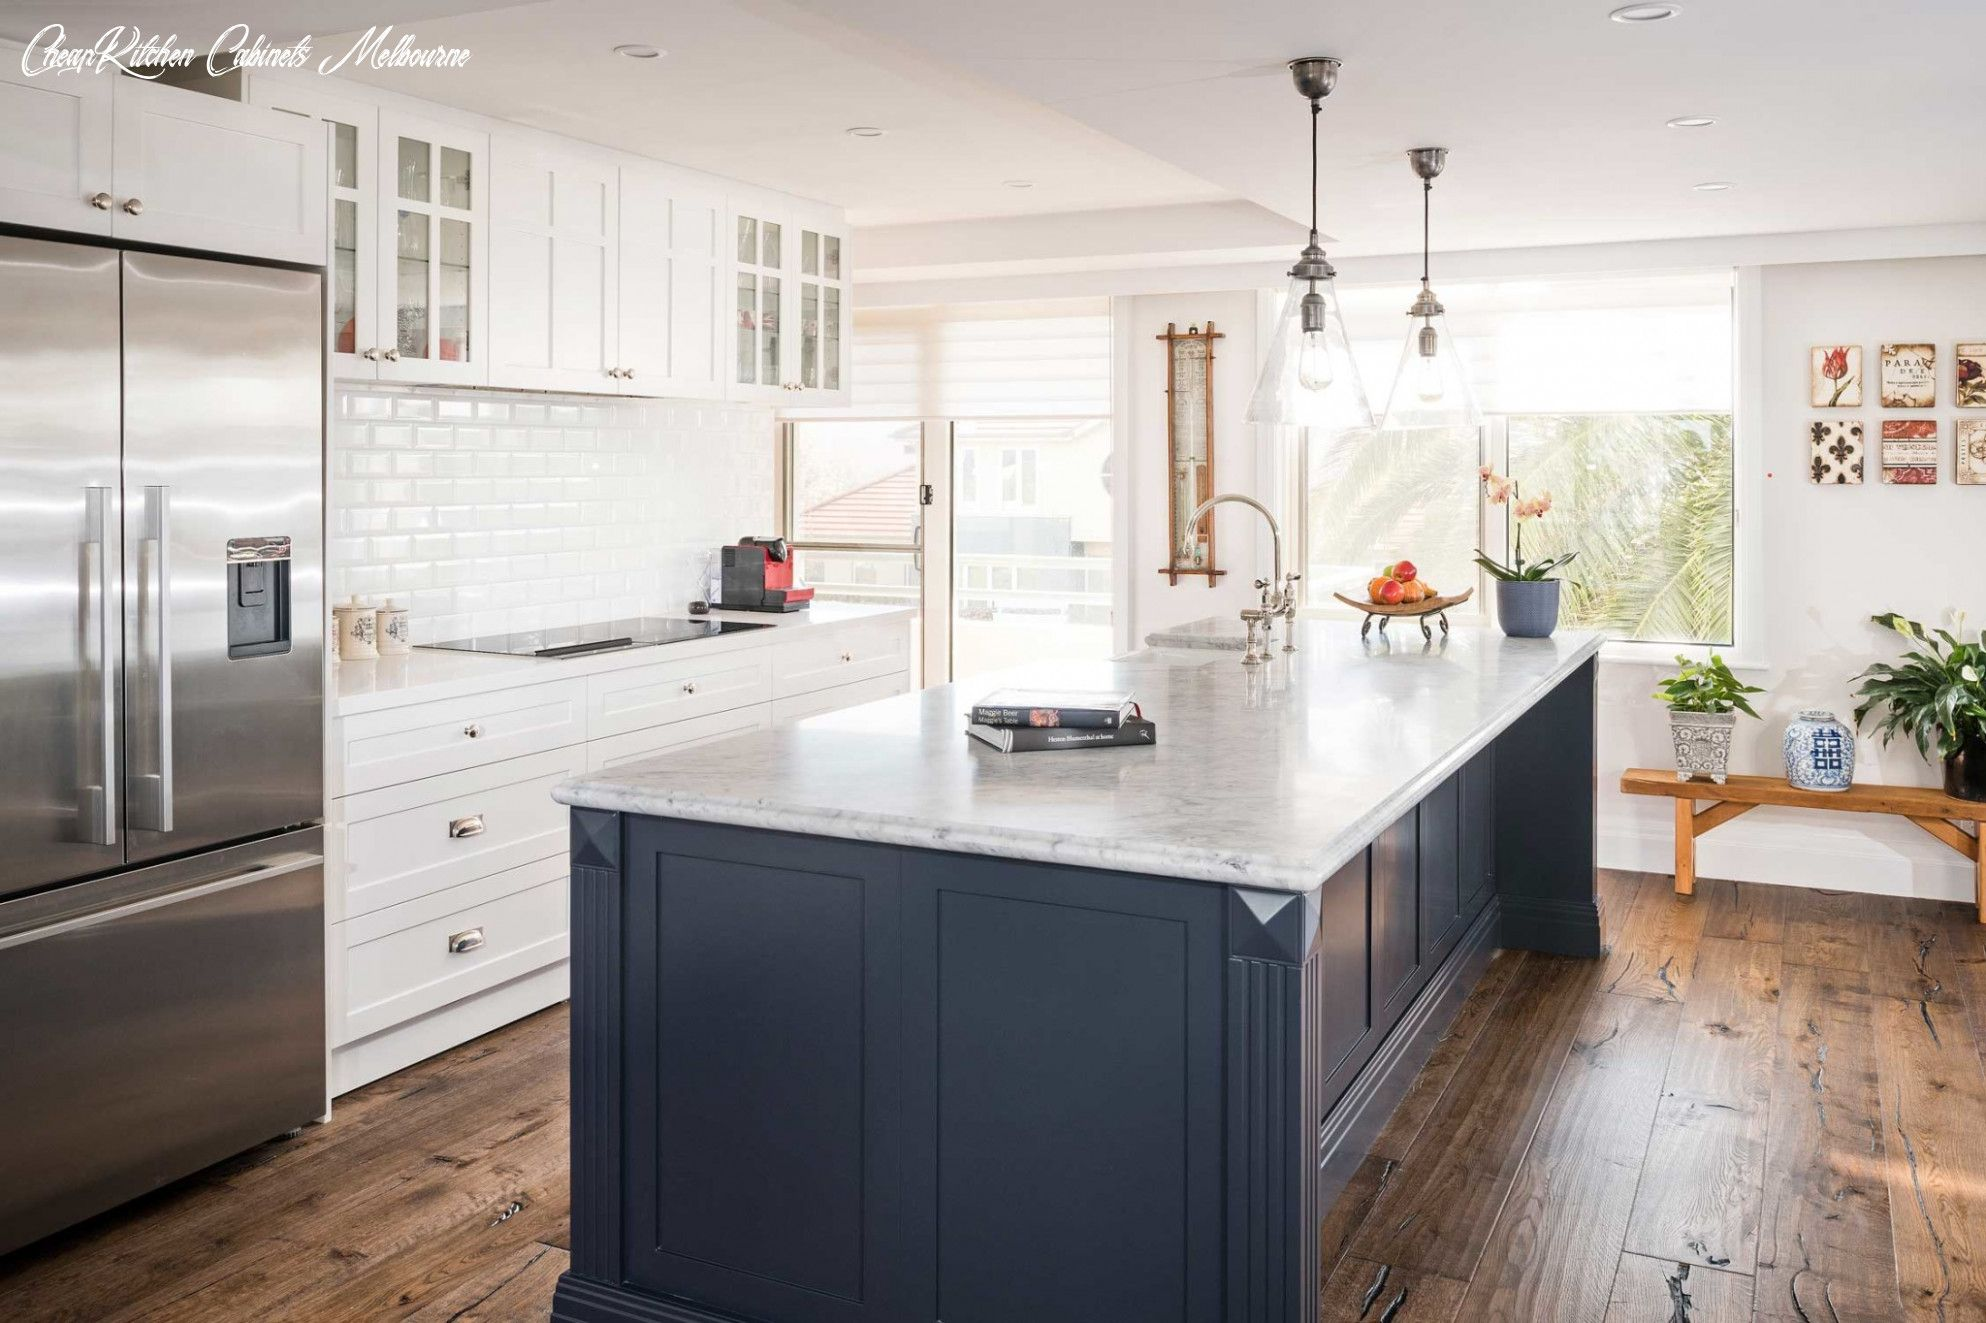 Cheap Kitchen Cabinets Melbourne In 2020 Shaker Style Kitchen Cabinets Kitchen Cabinet Styles Kitchen Cabinets For Sale